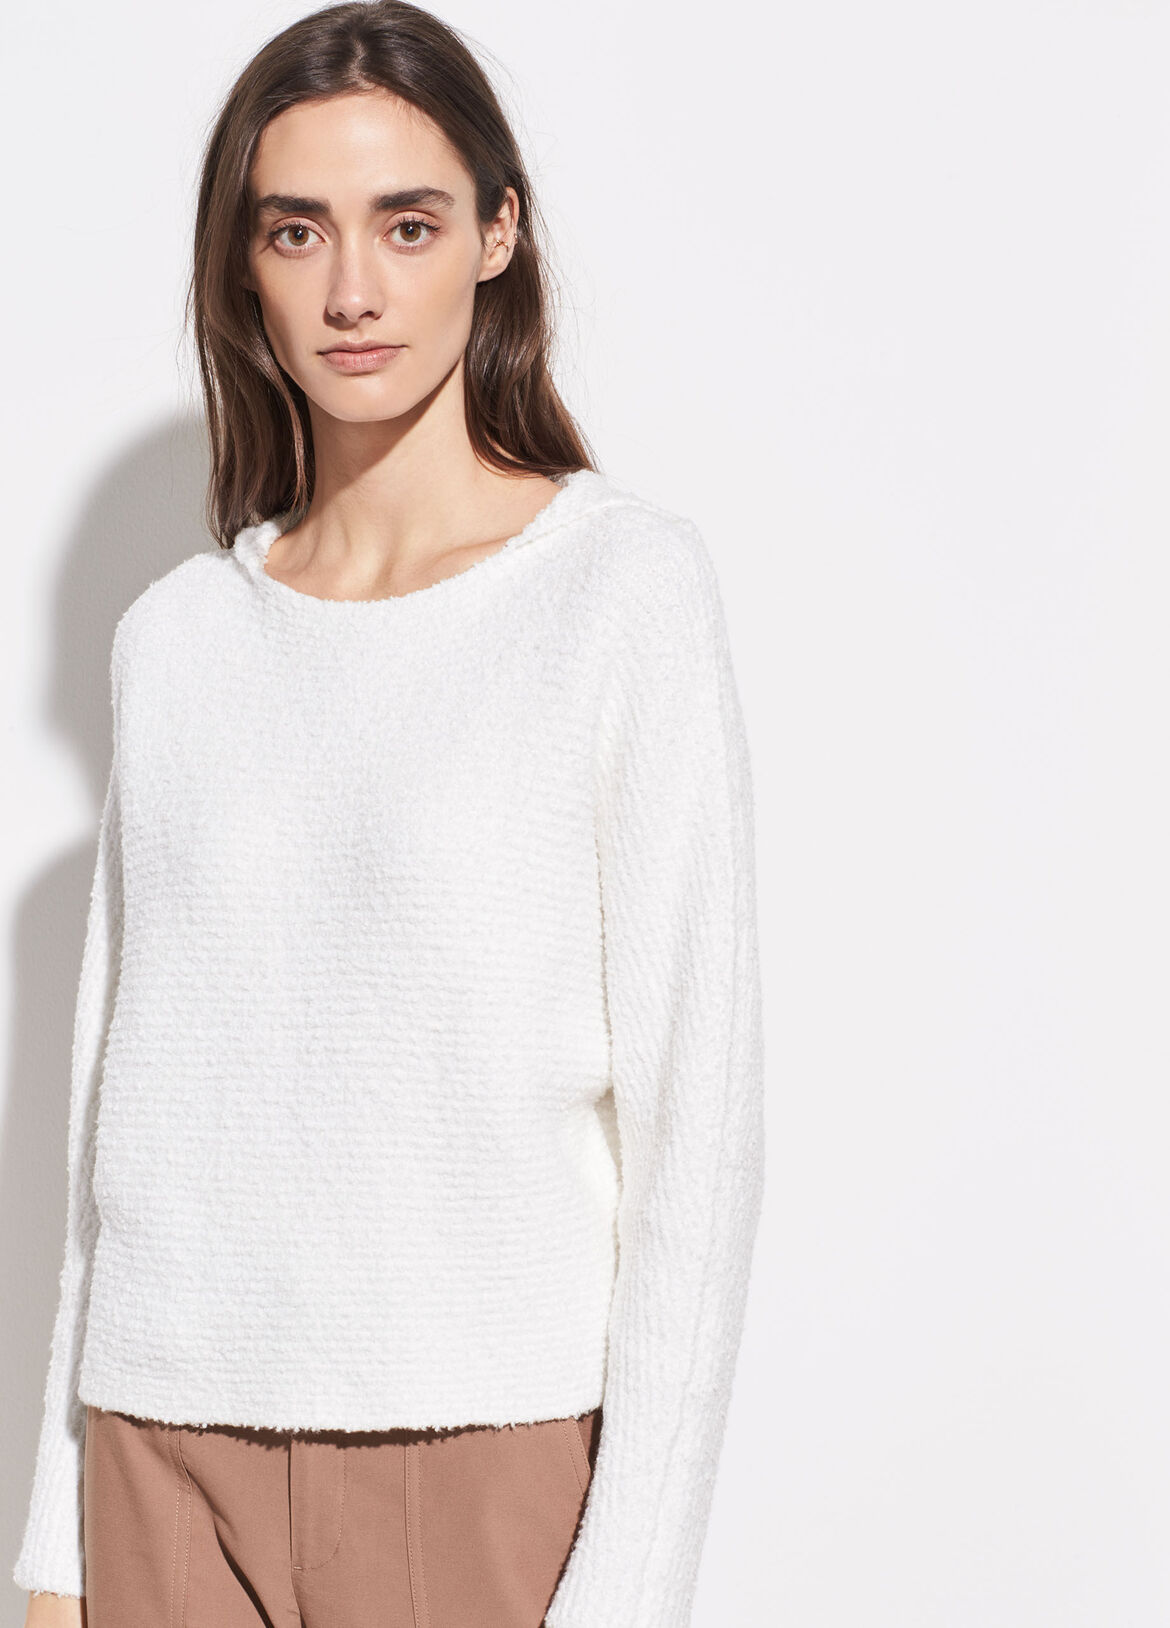 a8574a93258 Women s Sweaters Sale